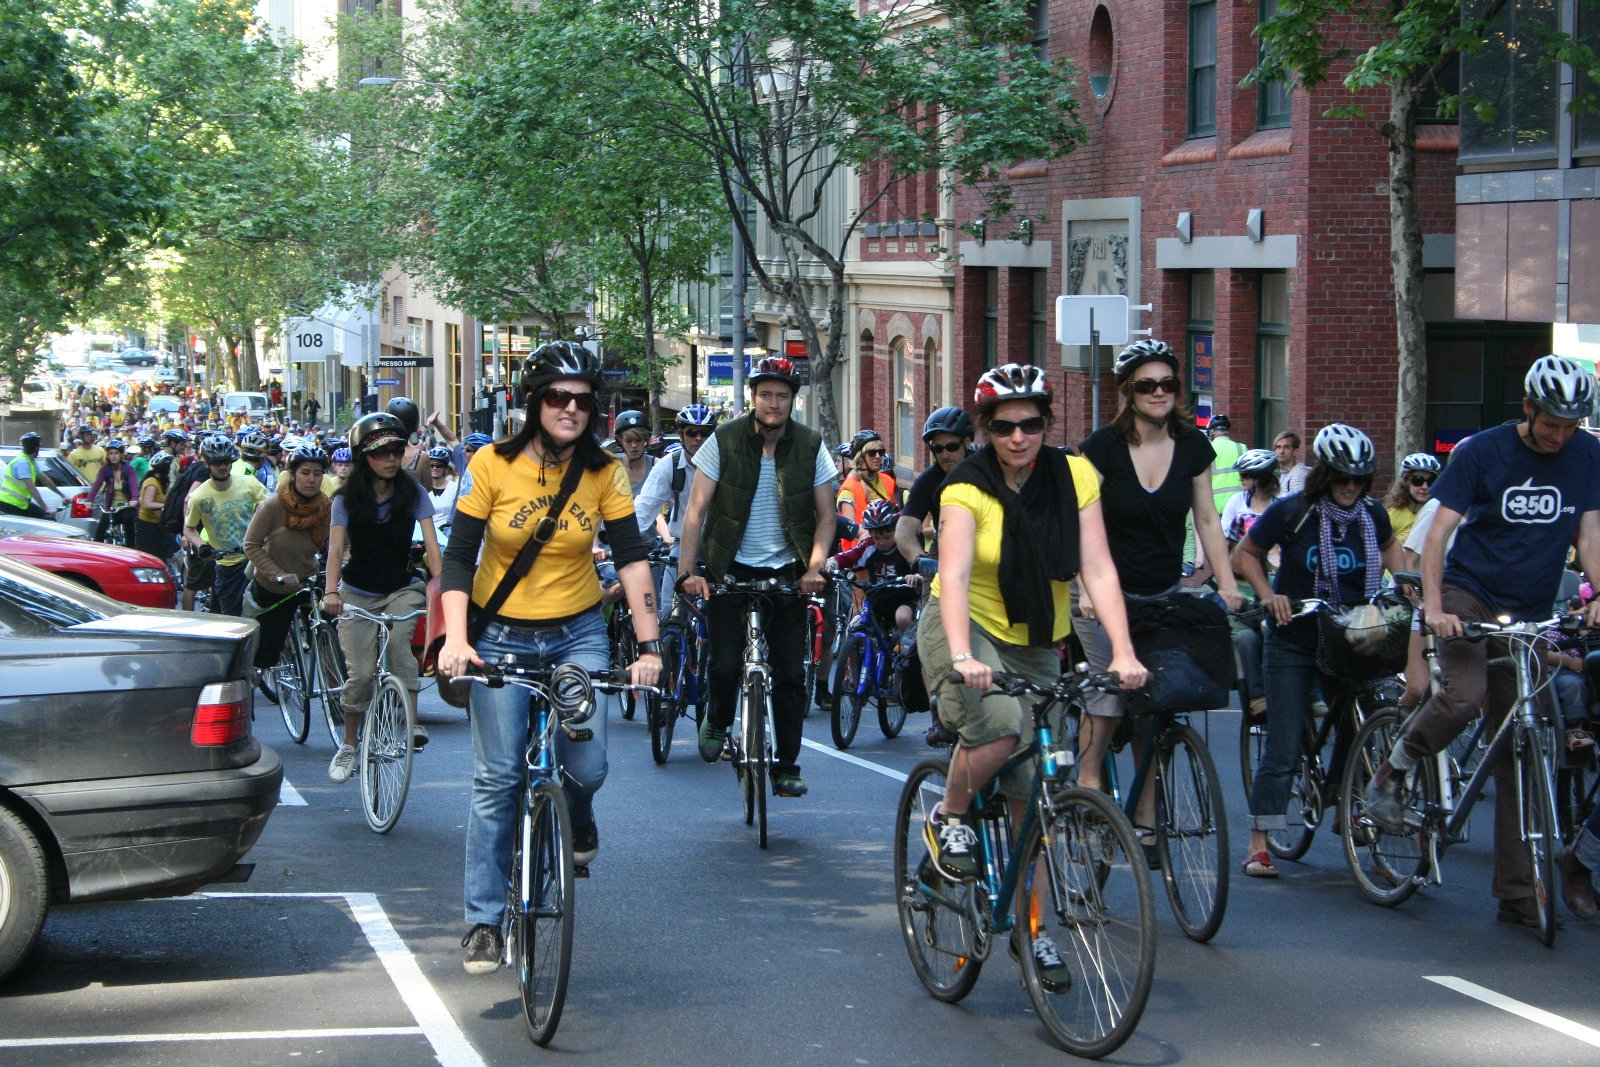 Cyclists_riding_in_Melbourne_for_350_Climate_Action.jpg